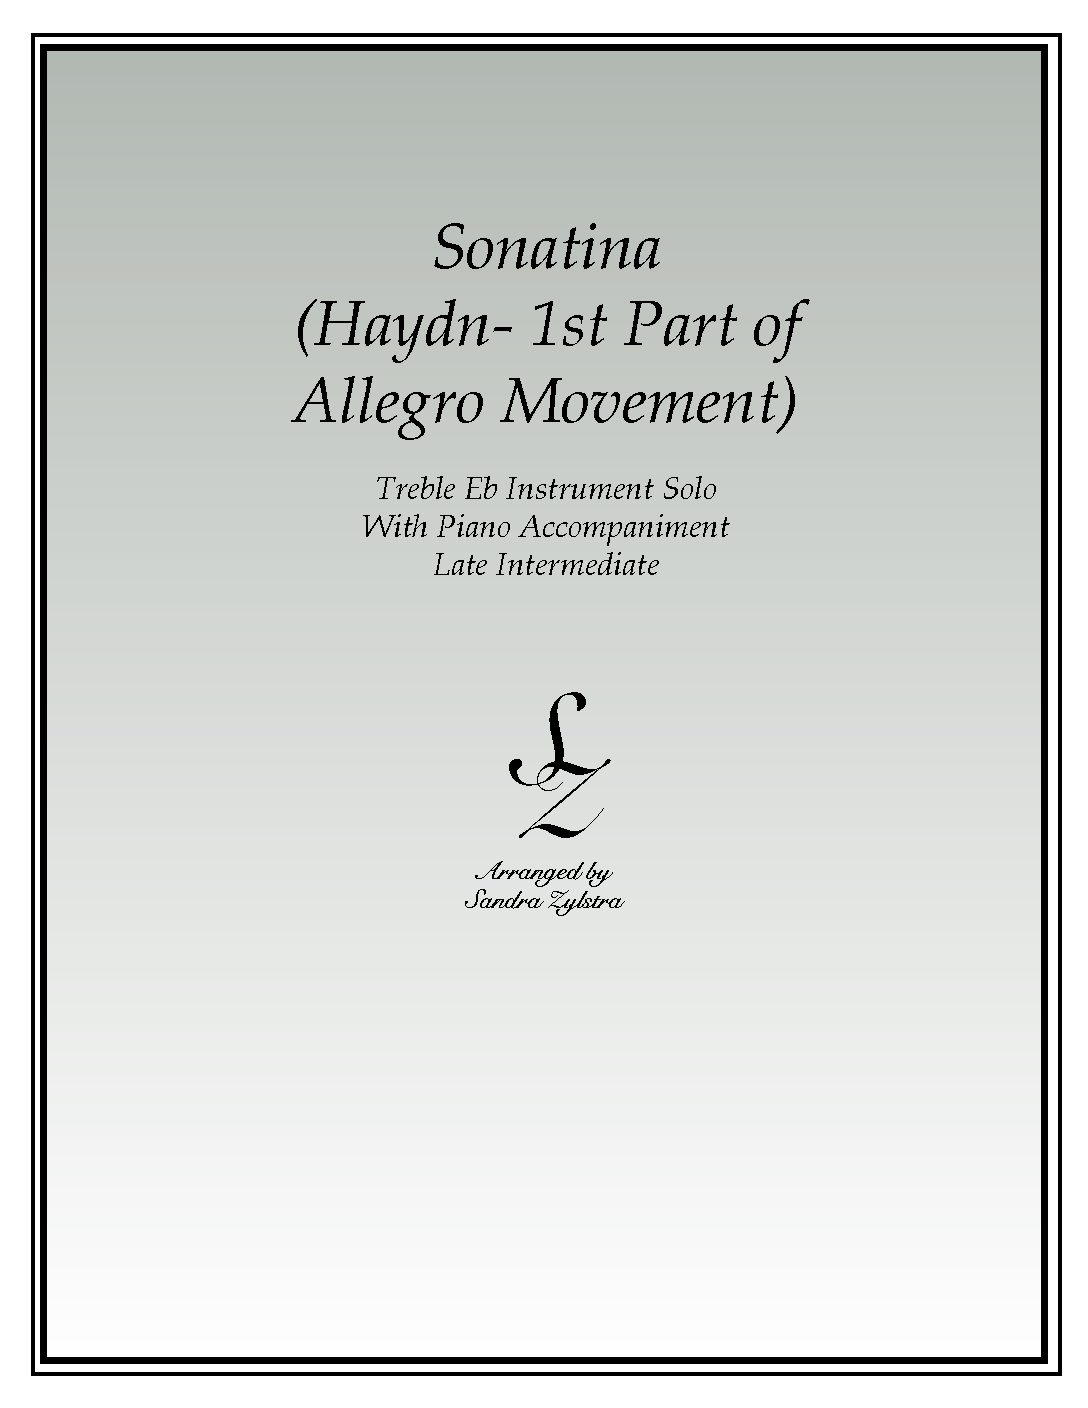 IS 59 Sonatina Haydn 1st part of Allegro Movement 02 Treble Eb pdf